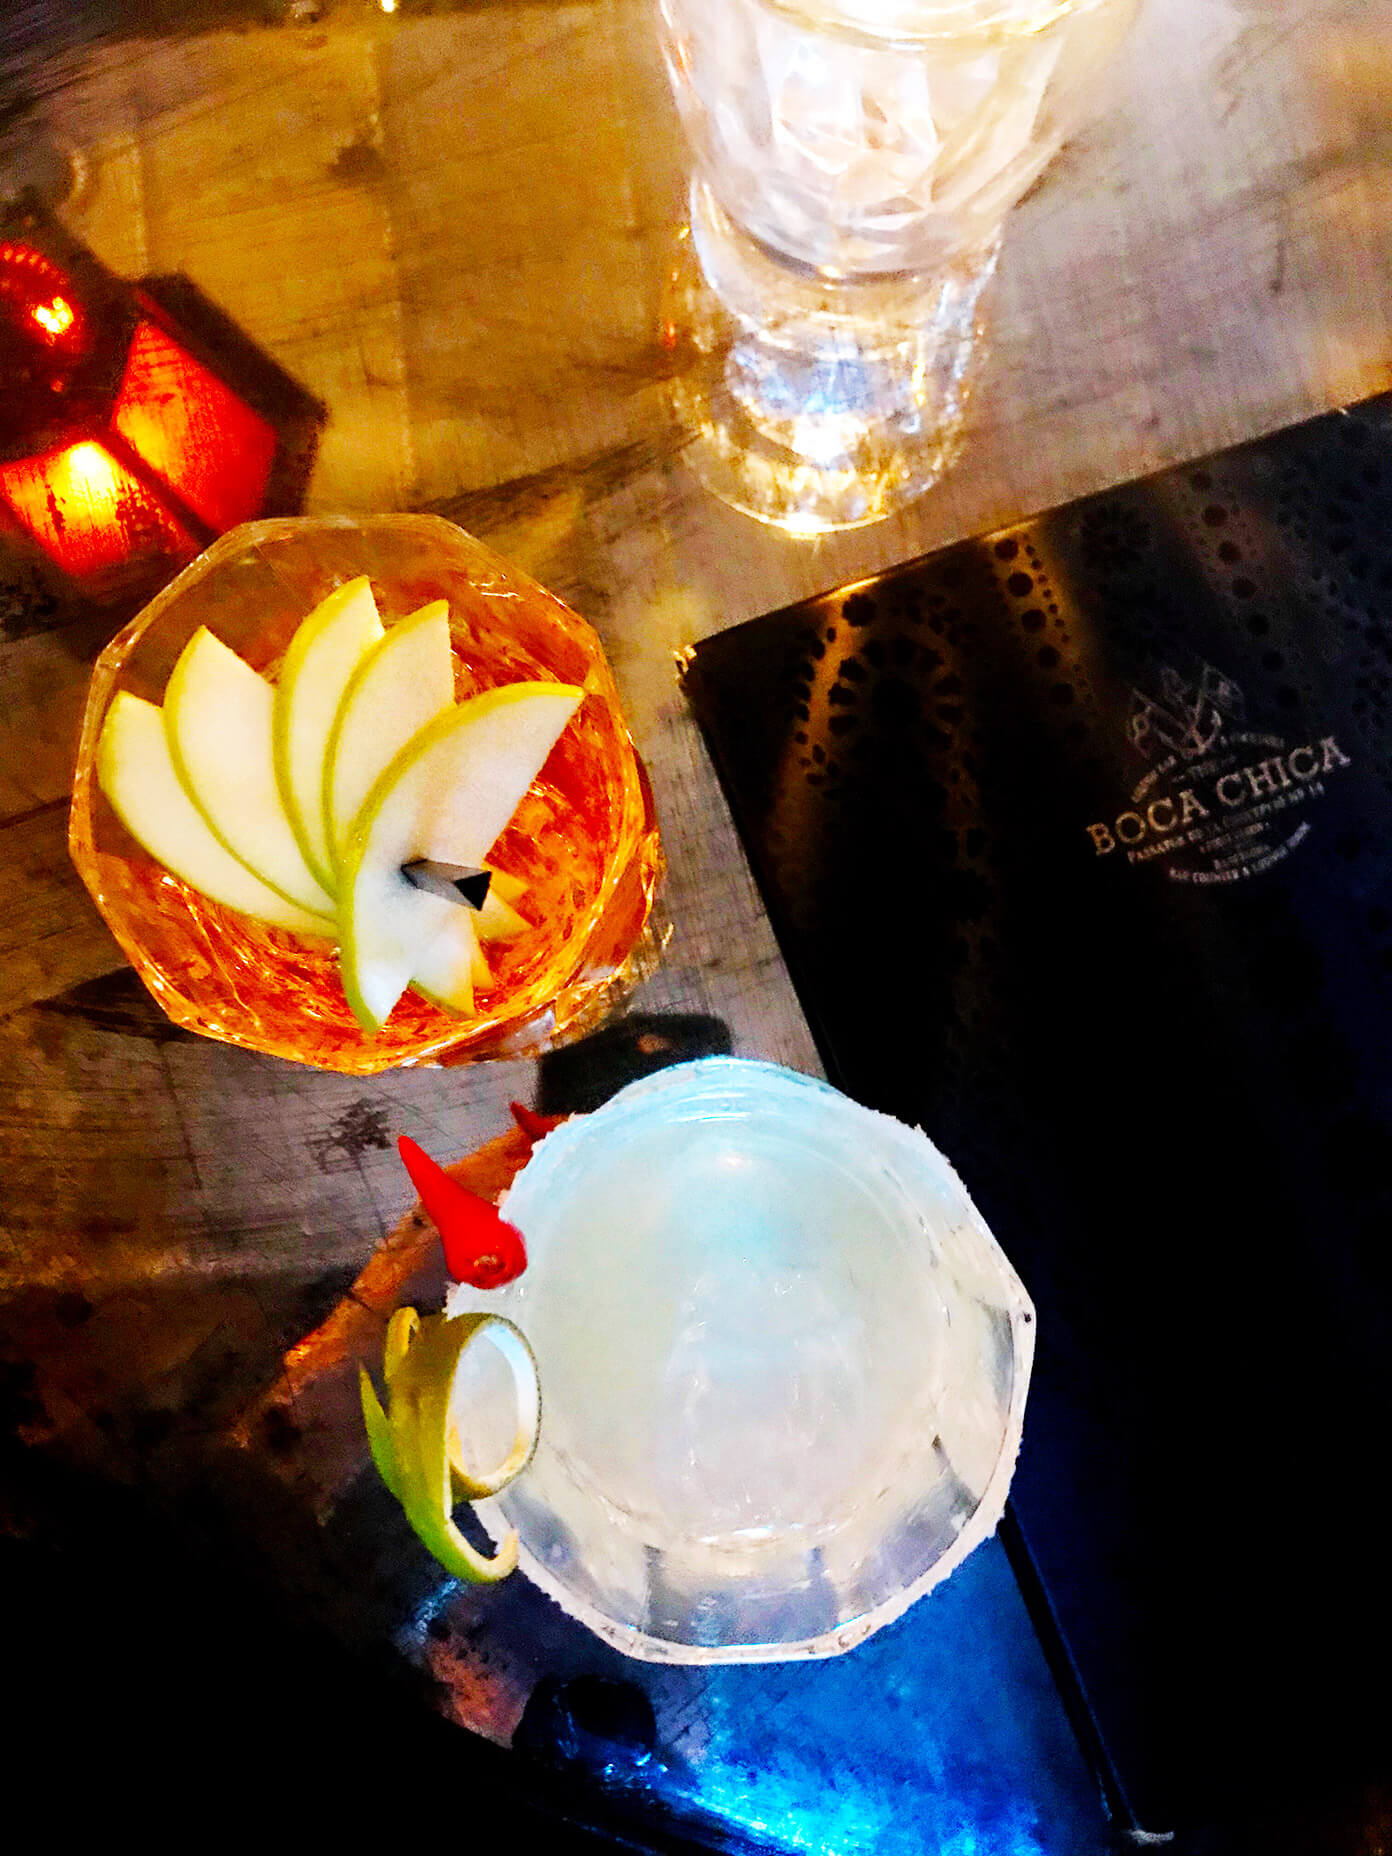 Boca Chica - swanky cocktails with a vibe to match | Gimme Some Barcelona Travel Guide